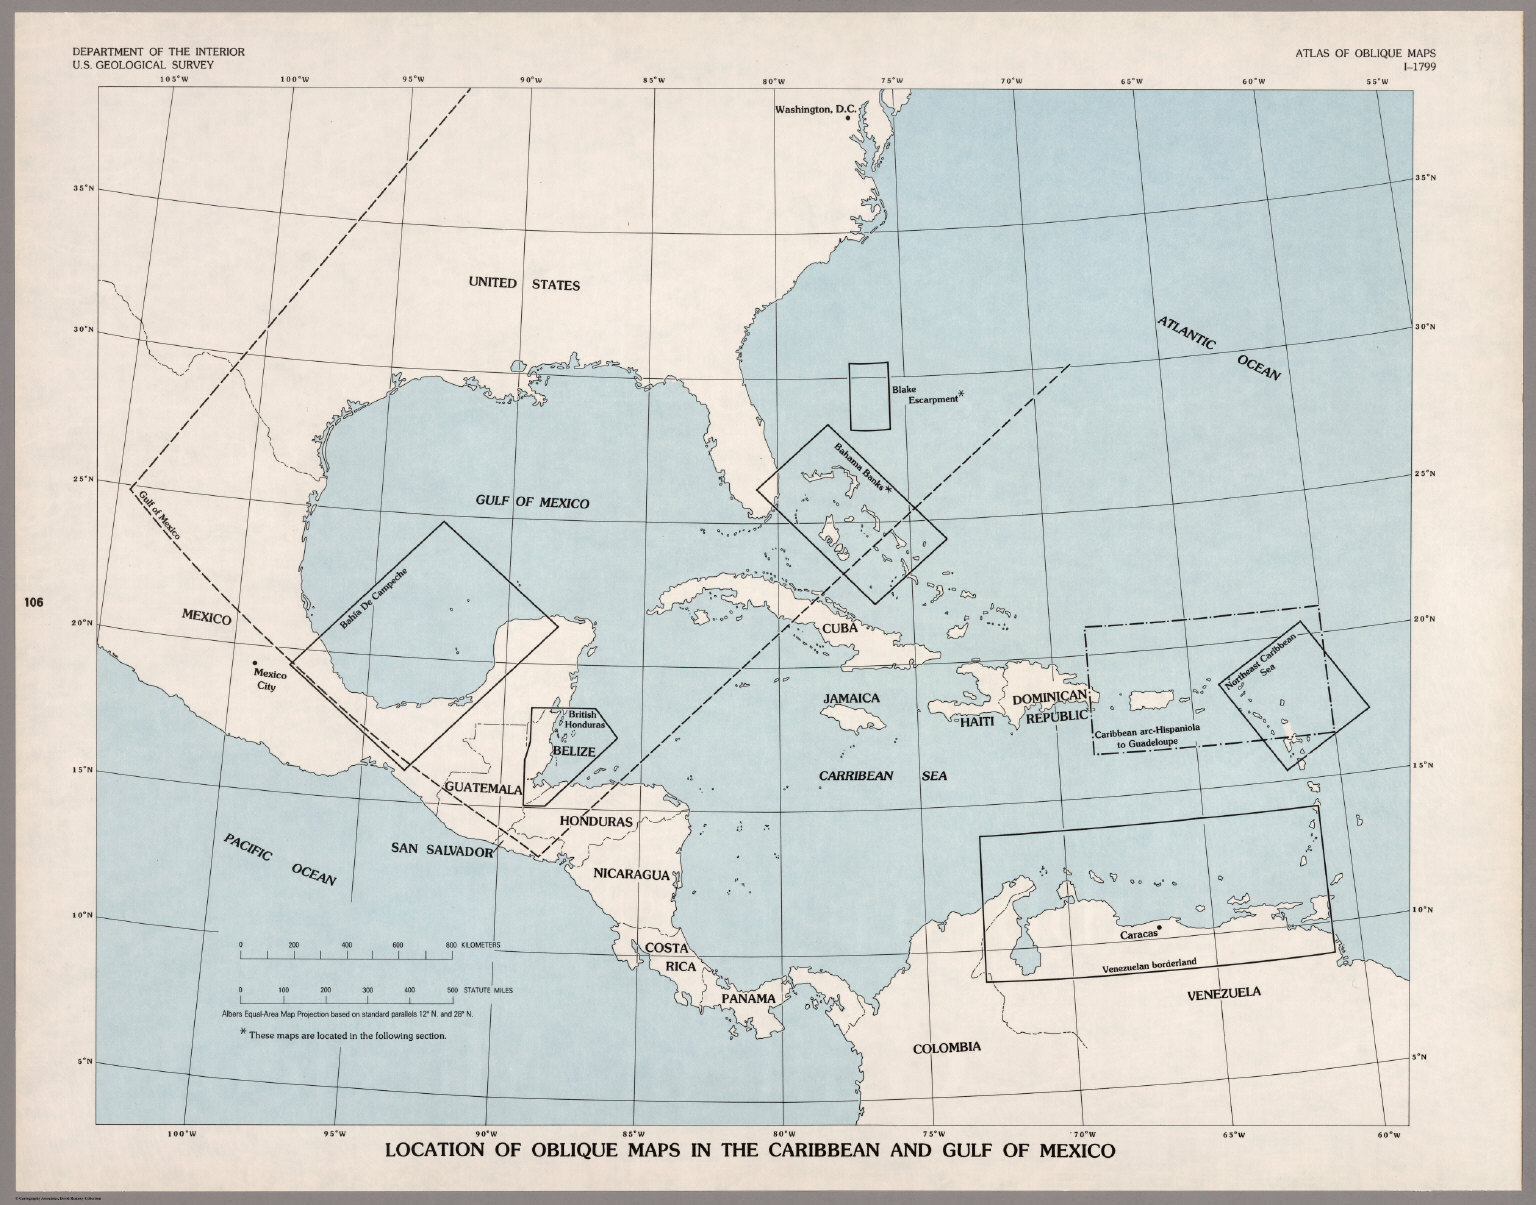 Index Map Location of Oblique Maps in the Caribbean and the Gulf of